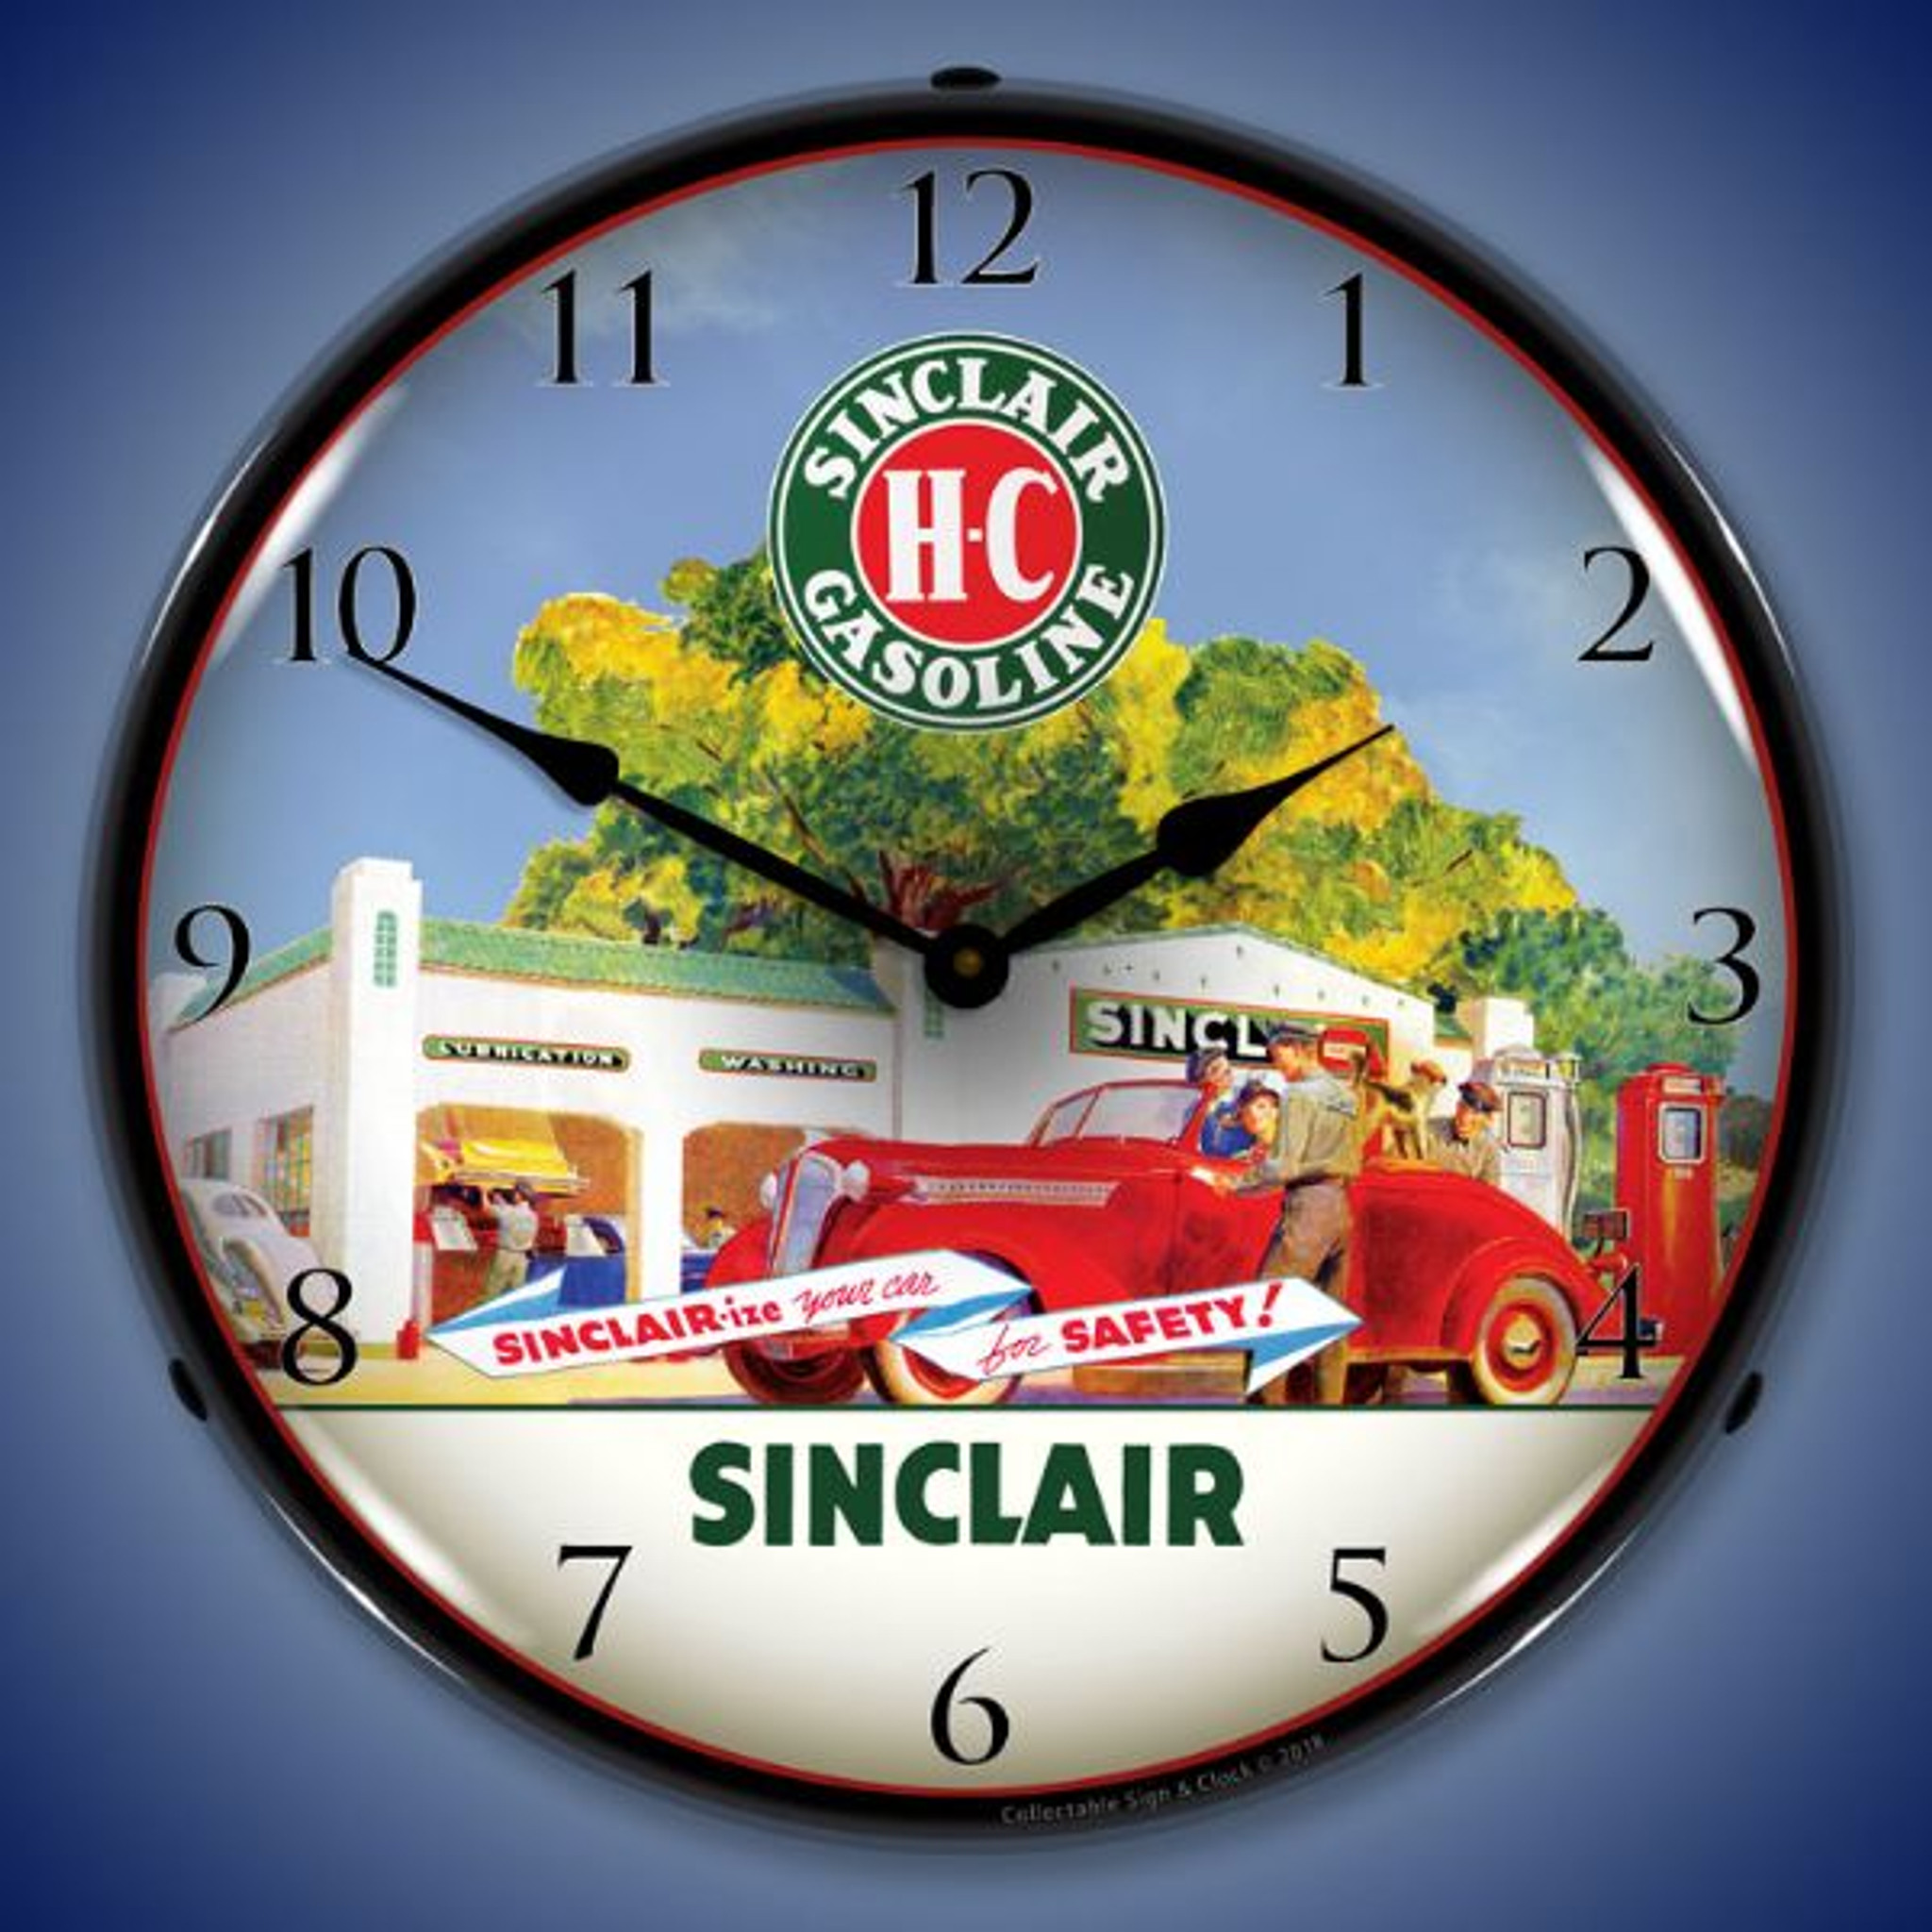 Sinclair Station LED Lighted Wall Clock 14 x 14 Inches